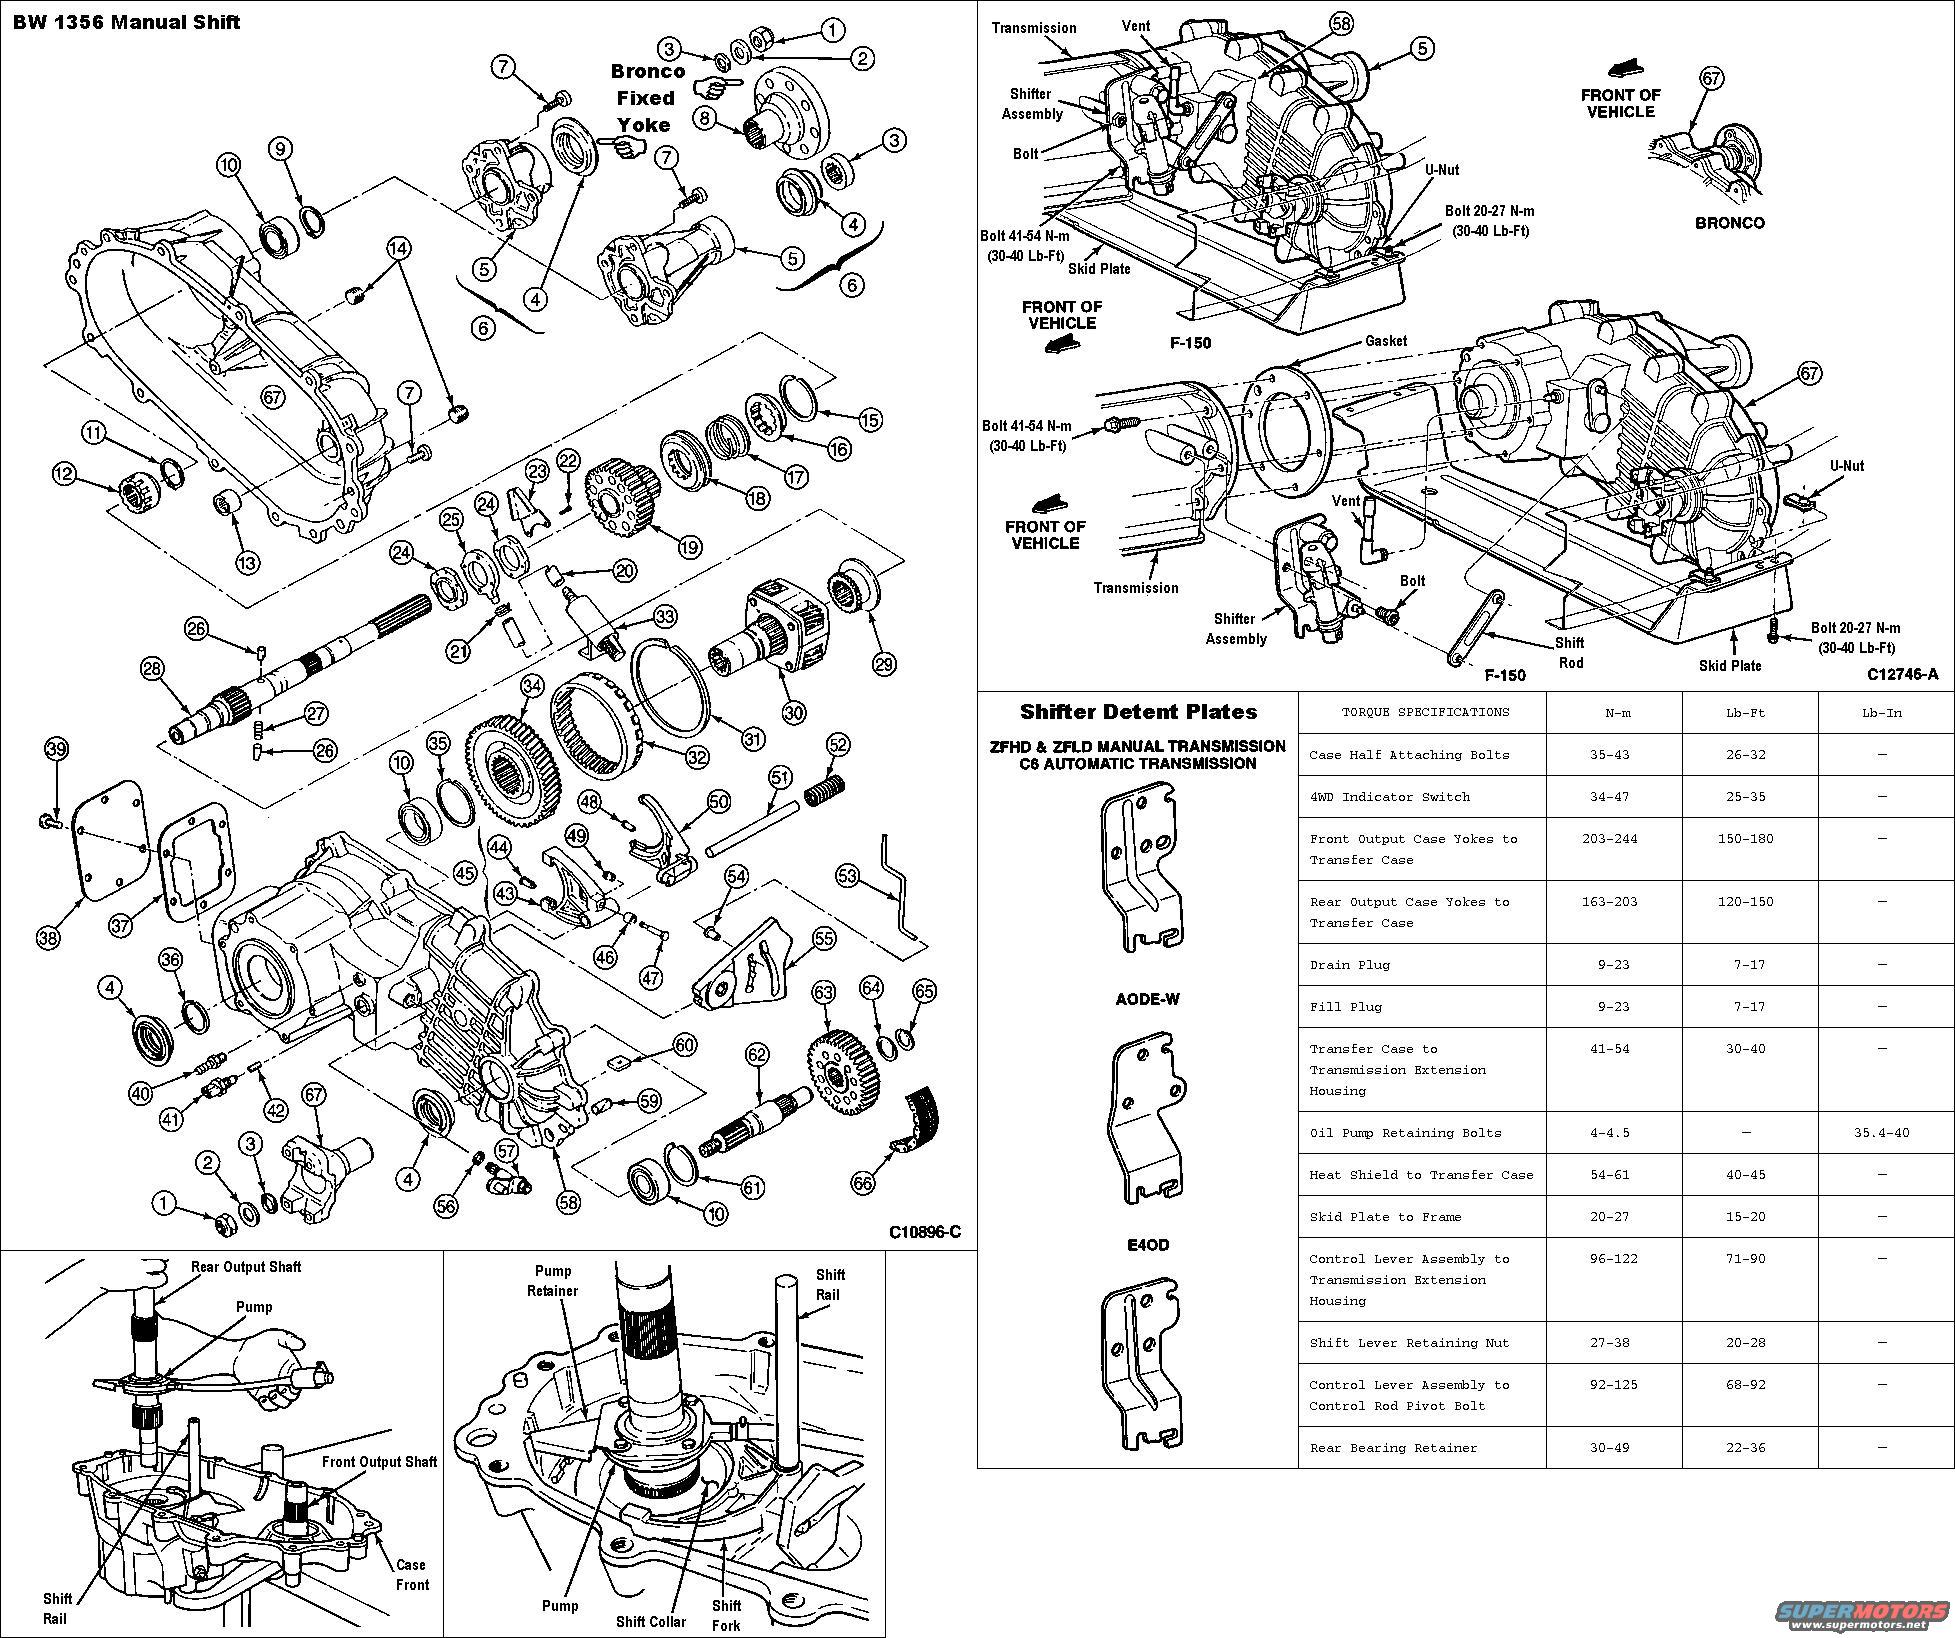 1995 jeep grand cherokee radio wiring diagram with 94 F150 Transfer Case Wiring Diagram on 1031526 Bad Charging System Cant Find The Source further Honda Prelude Wiring Harness Routing And Ground Location 88 in addition RepairGuideContent additionally 95 Civic Engine Harness Diagram additionally 95 Dodge Ram 1500 Fuel Filter Location.